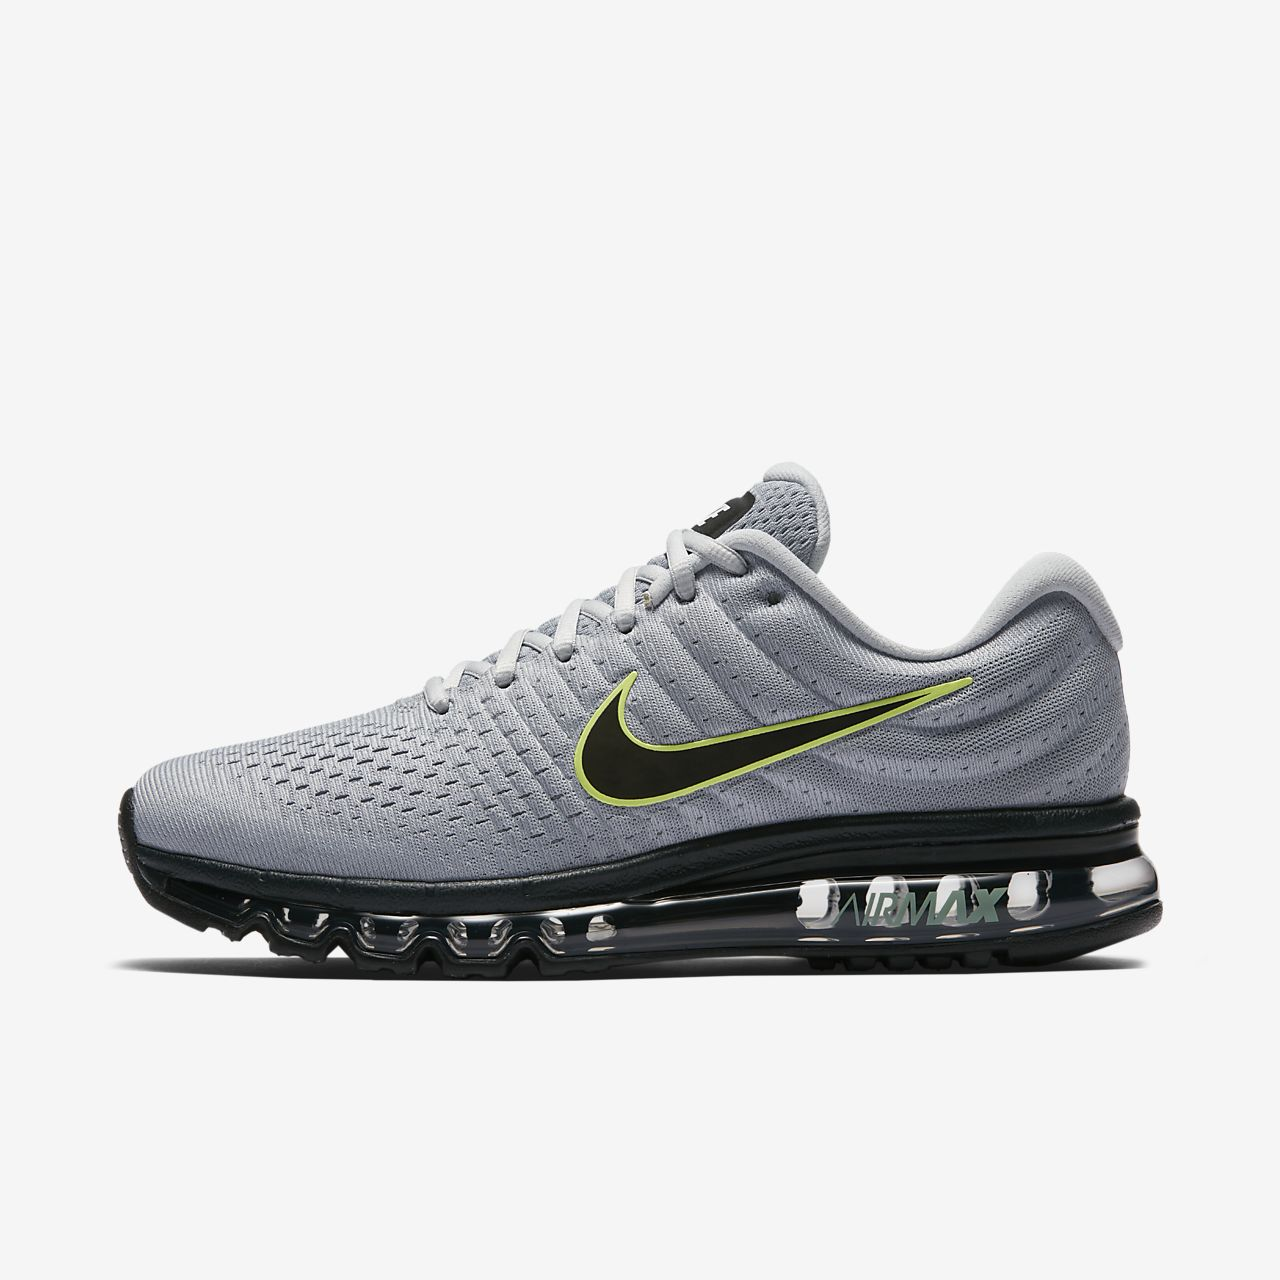 official photos cfe88 508a1 Men s Shoe. Nike Air Max 2017